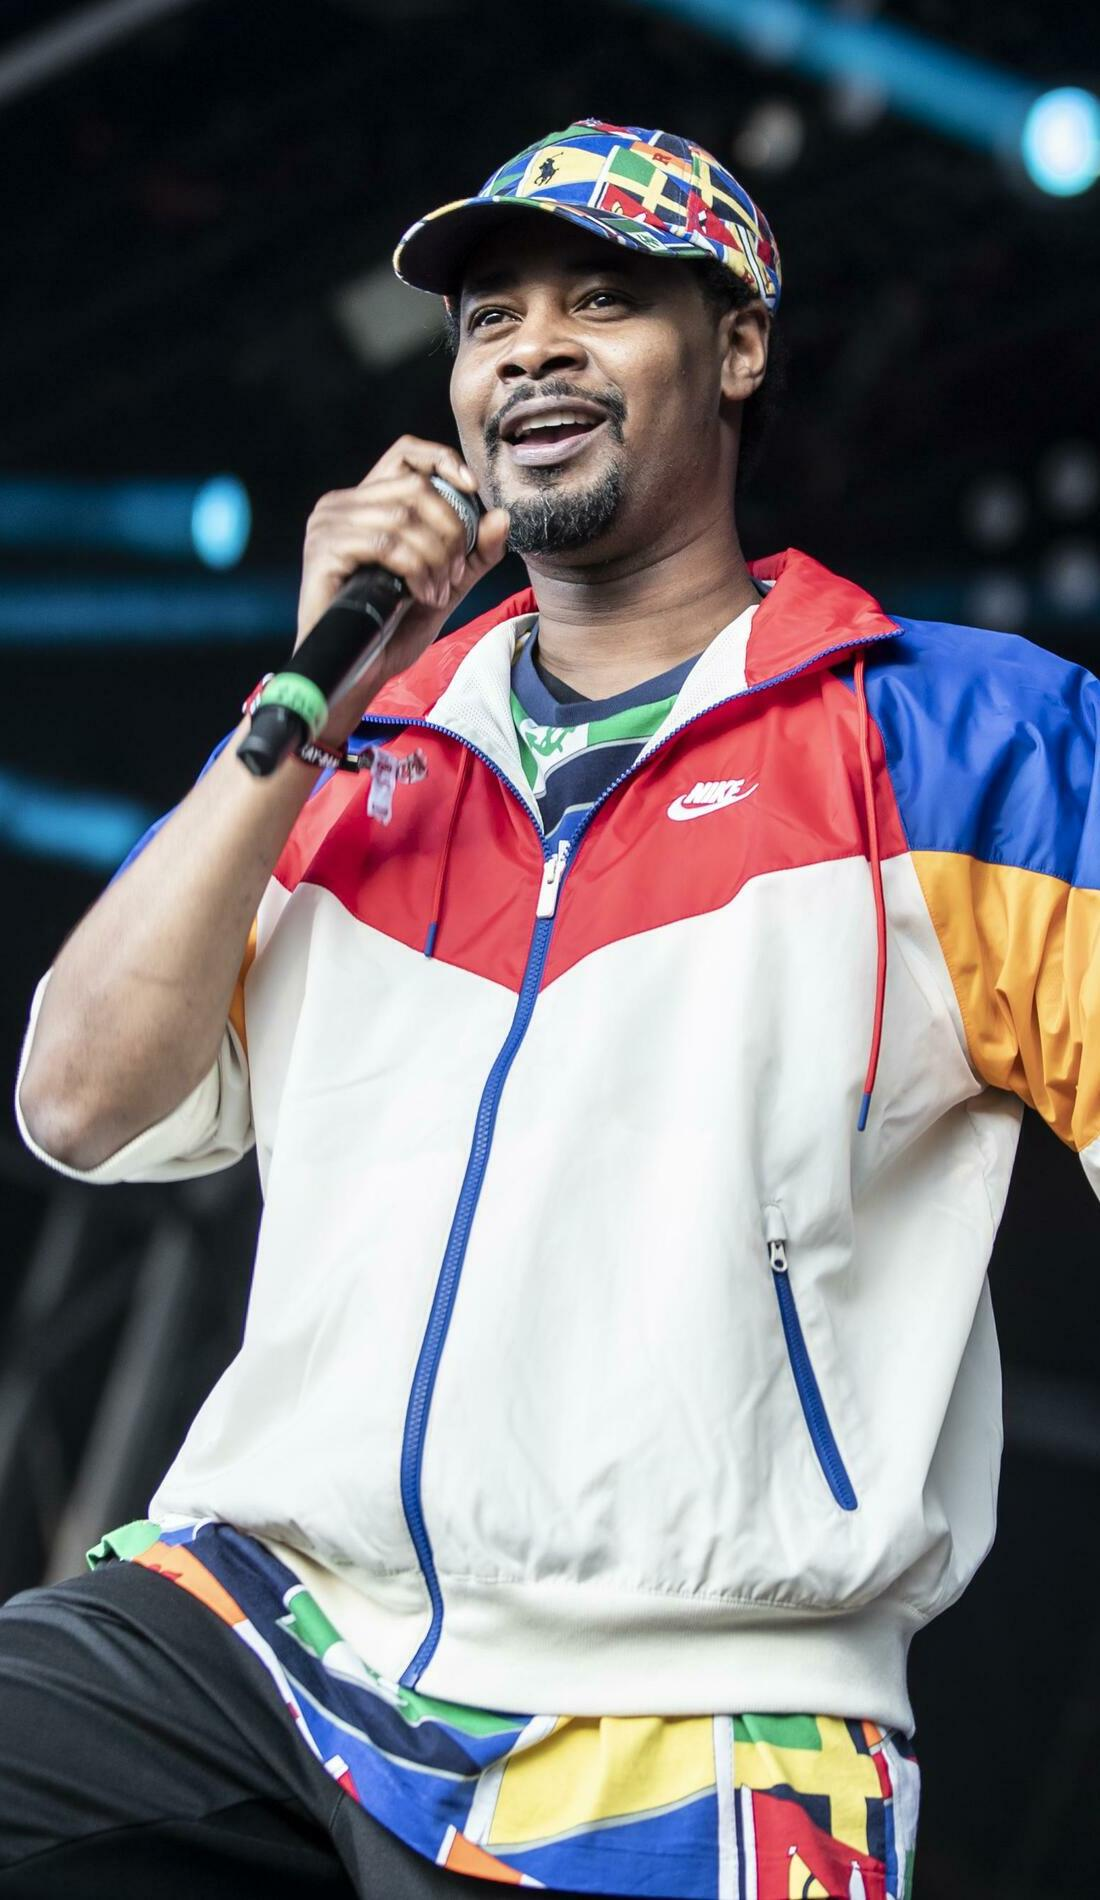 A DANNY BROWN live event